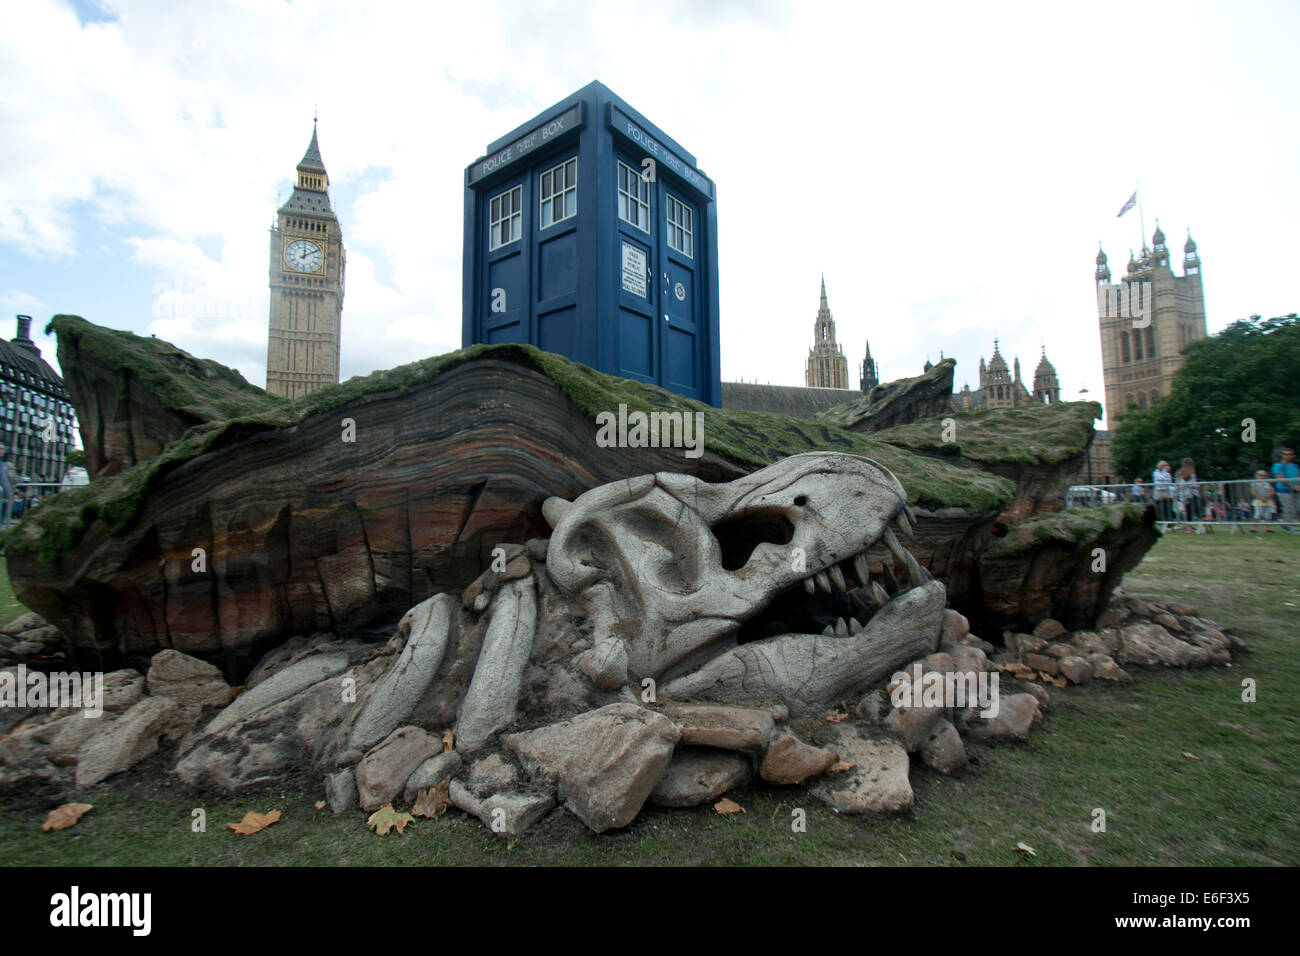 London,UK. 22nd August 2014. Dr Who Tardis appears in Parliament square to launch the new BBC sci fi series on August - Stock Image